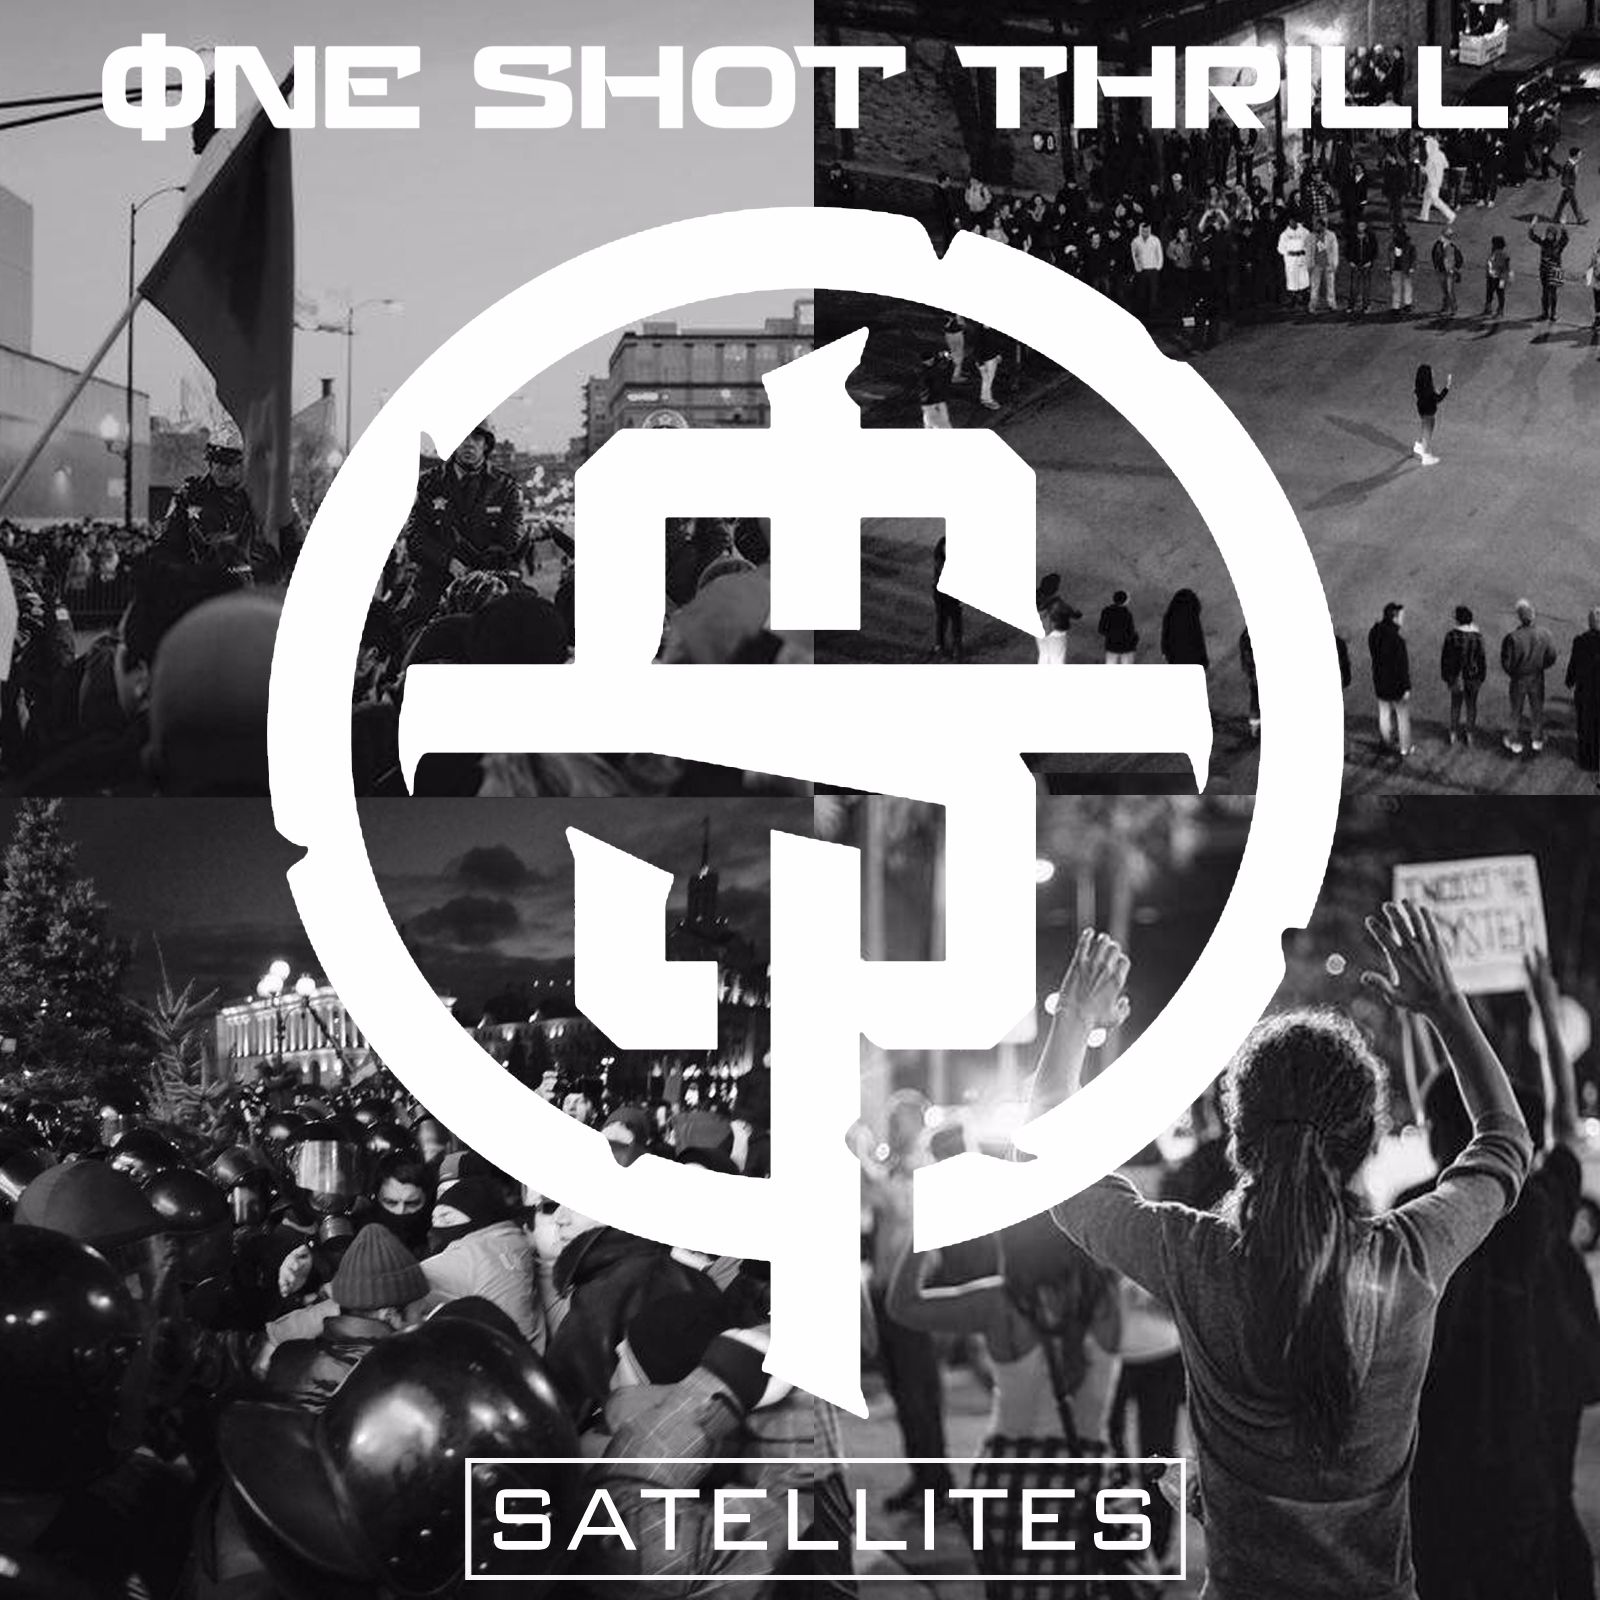 One Shot Thrill - Satellites [single] (2016)